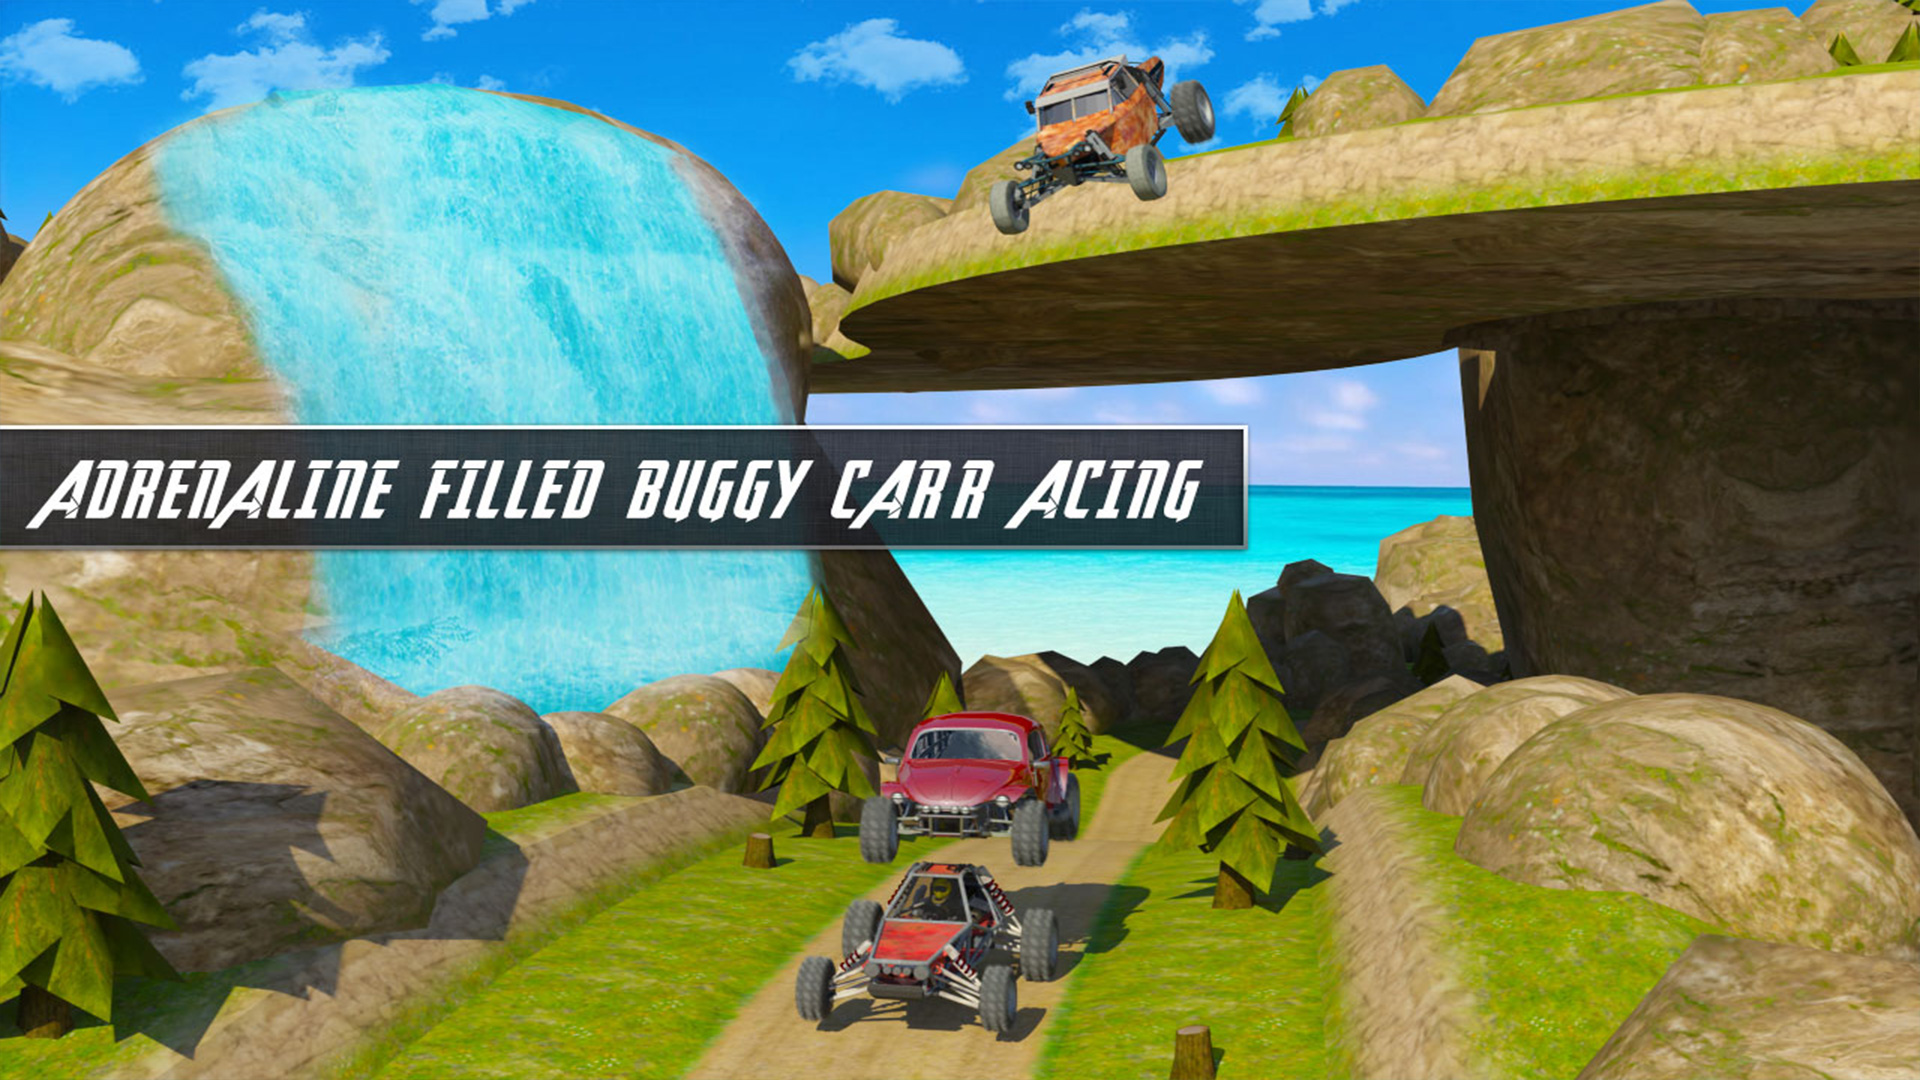 Offroad Dune Buggy Car Racing Outlaws Simulator 2018: Dirt Track Games Free  for Kids